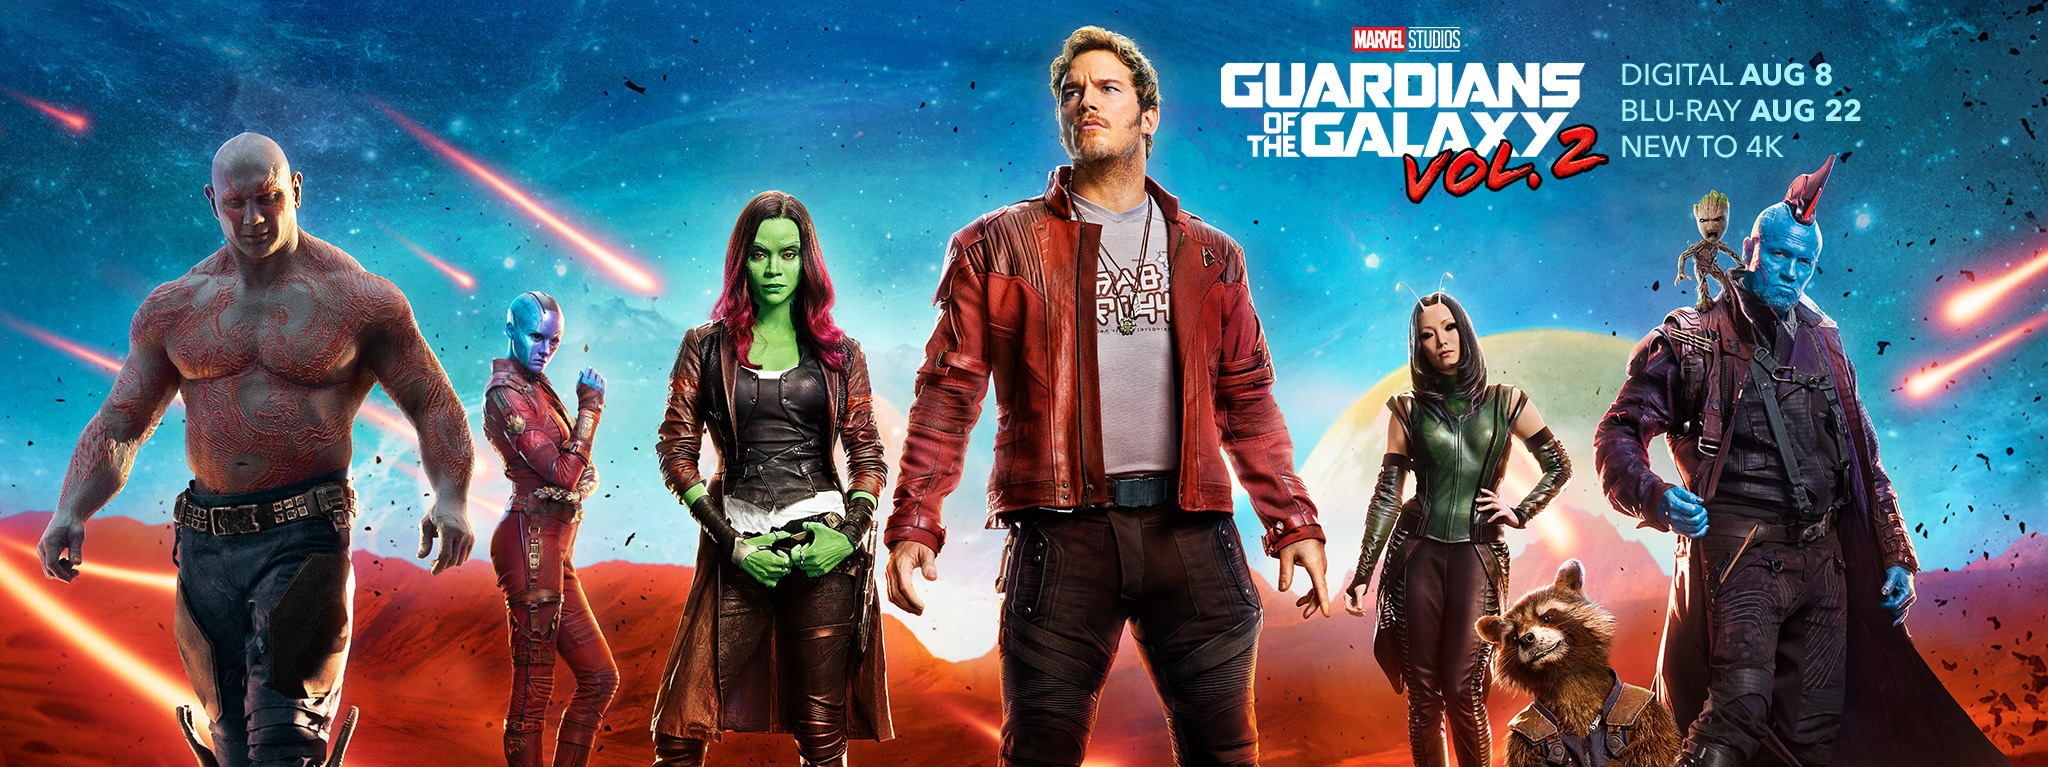 Guardians of the Galaxy Volume 2 on Digital August 8 and Blu-Ray August 22